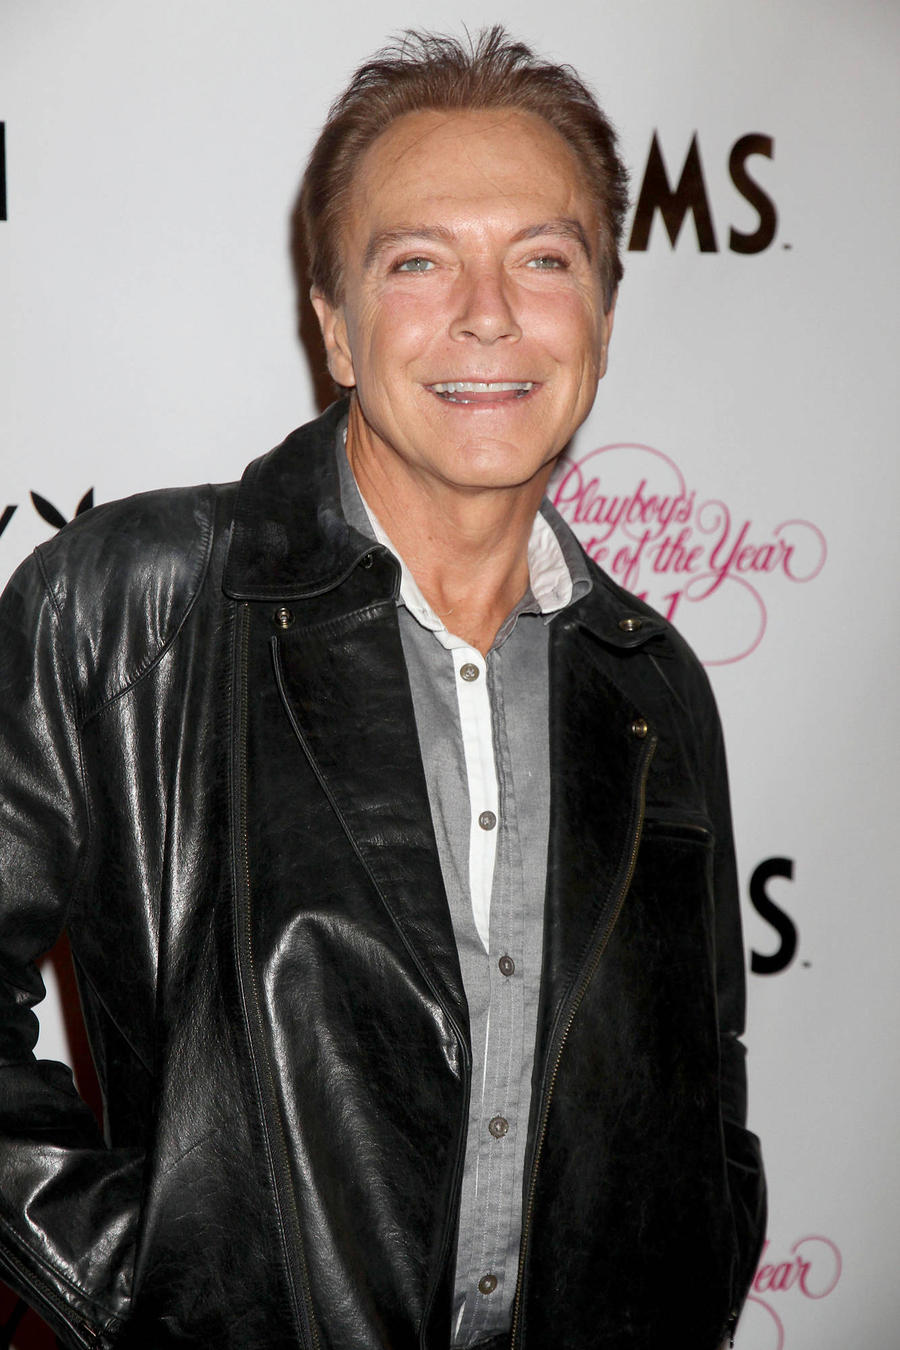 David Cassidy: 'Alcohol Was Not To Blame For Concert Stage Fall'